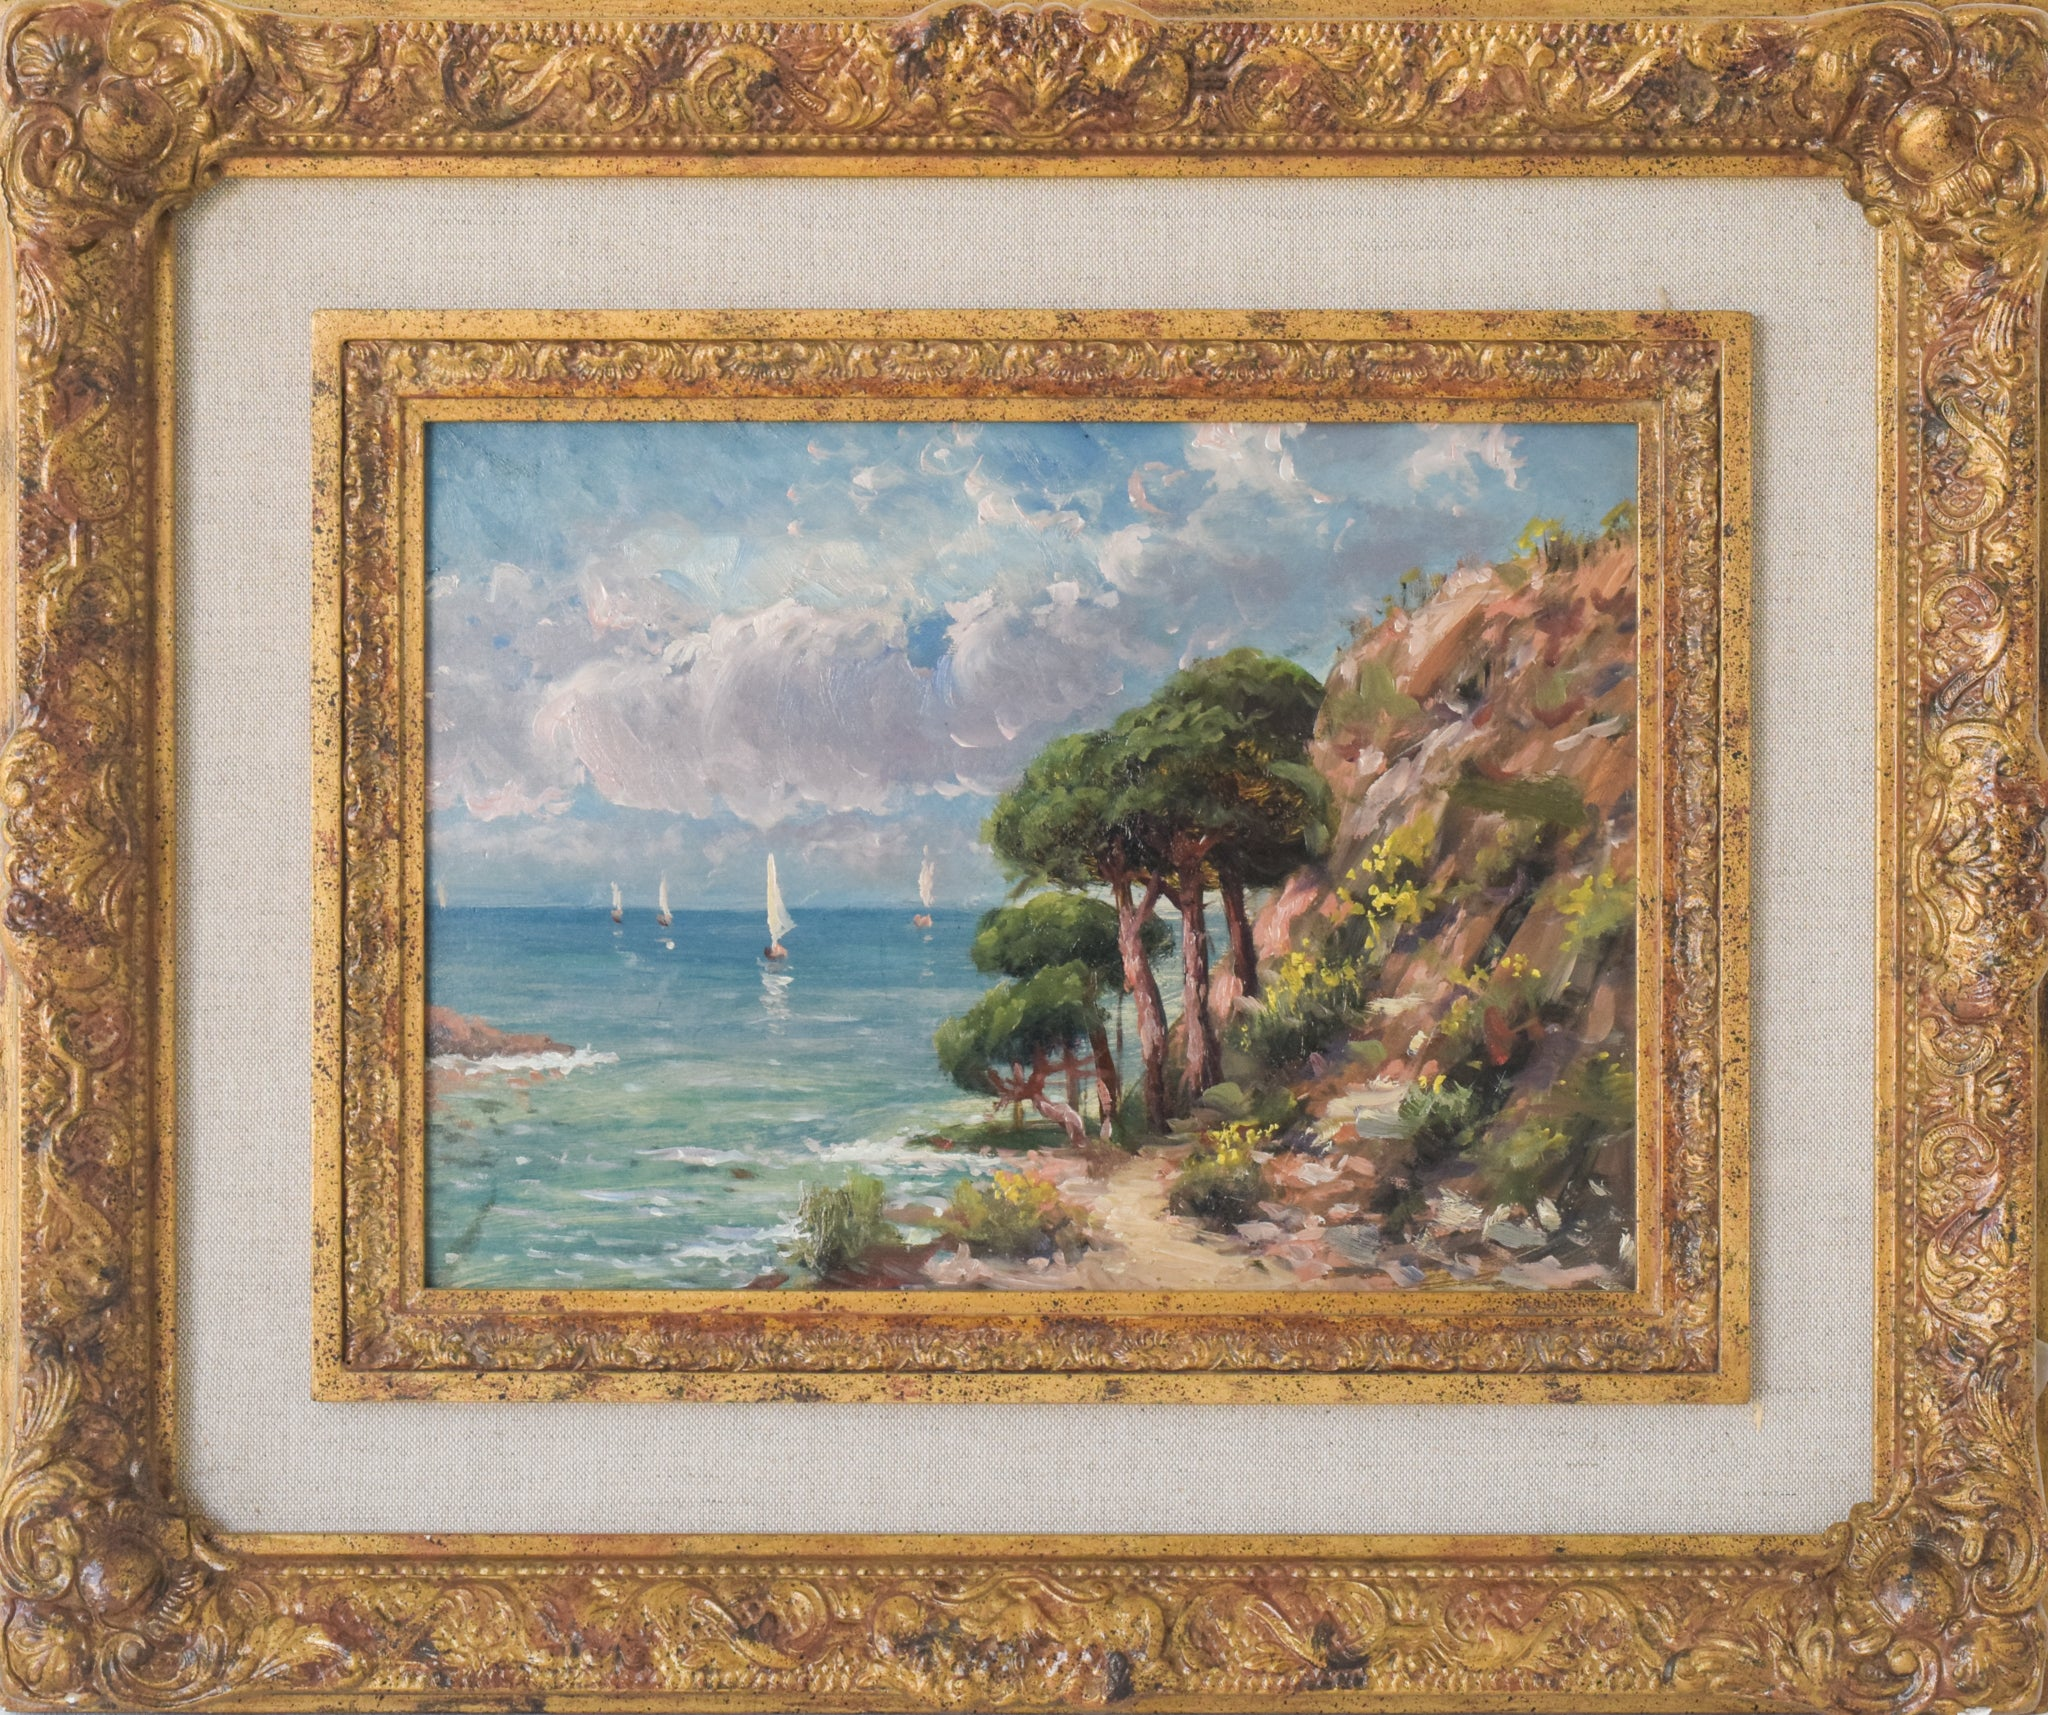 Coastal Landscape with Sailings Boats and Flowers_Framed